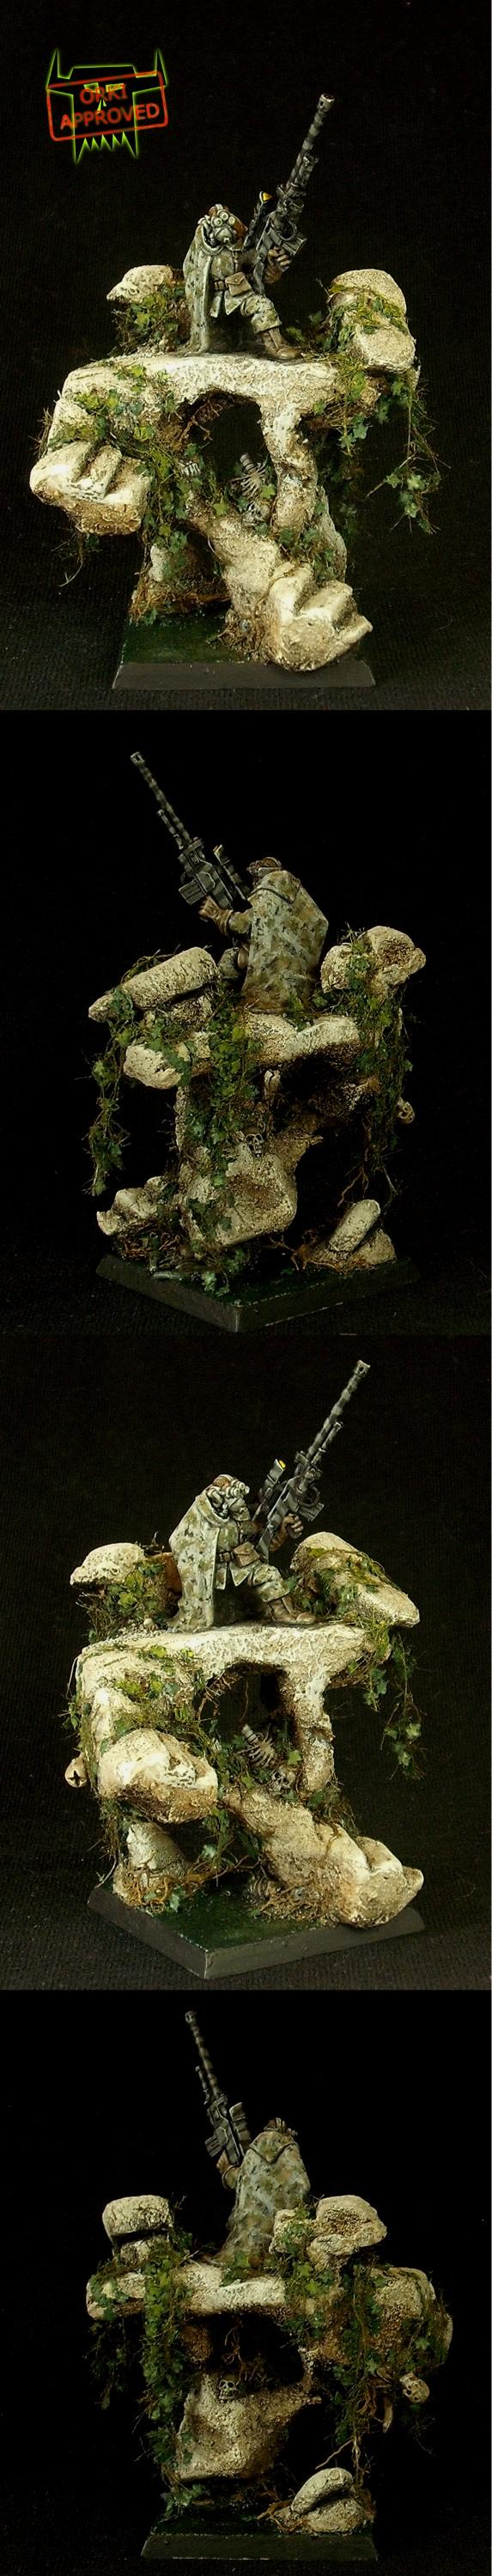 Camouflage, Ivy, Jungle, Roots, Ruins, Snipers, Urban War, Vines